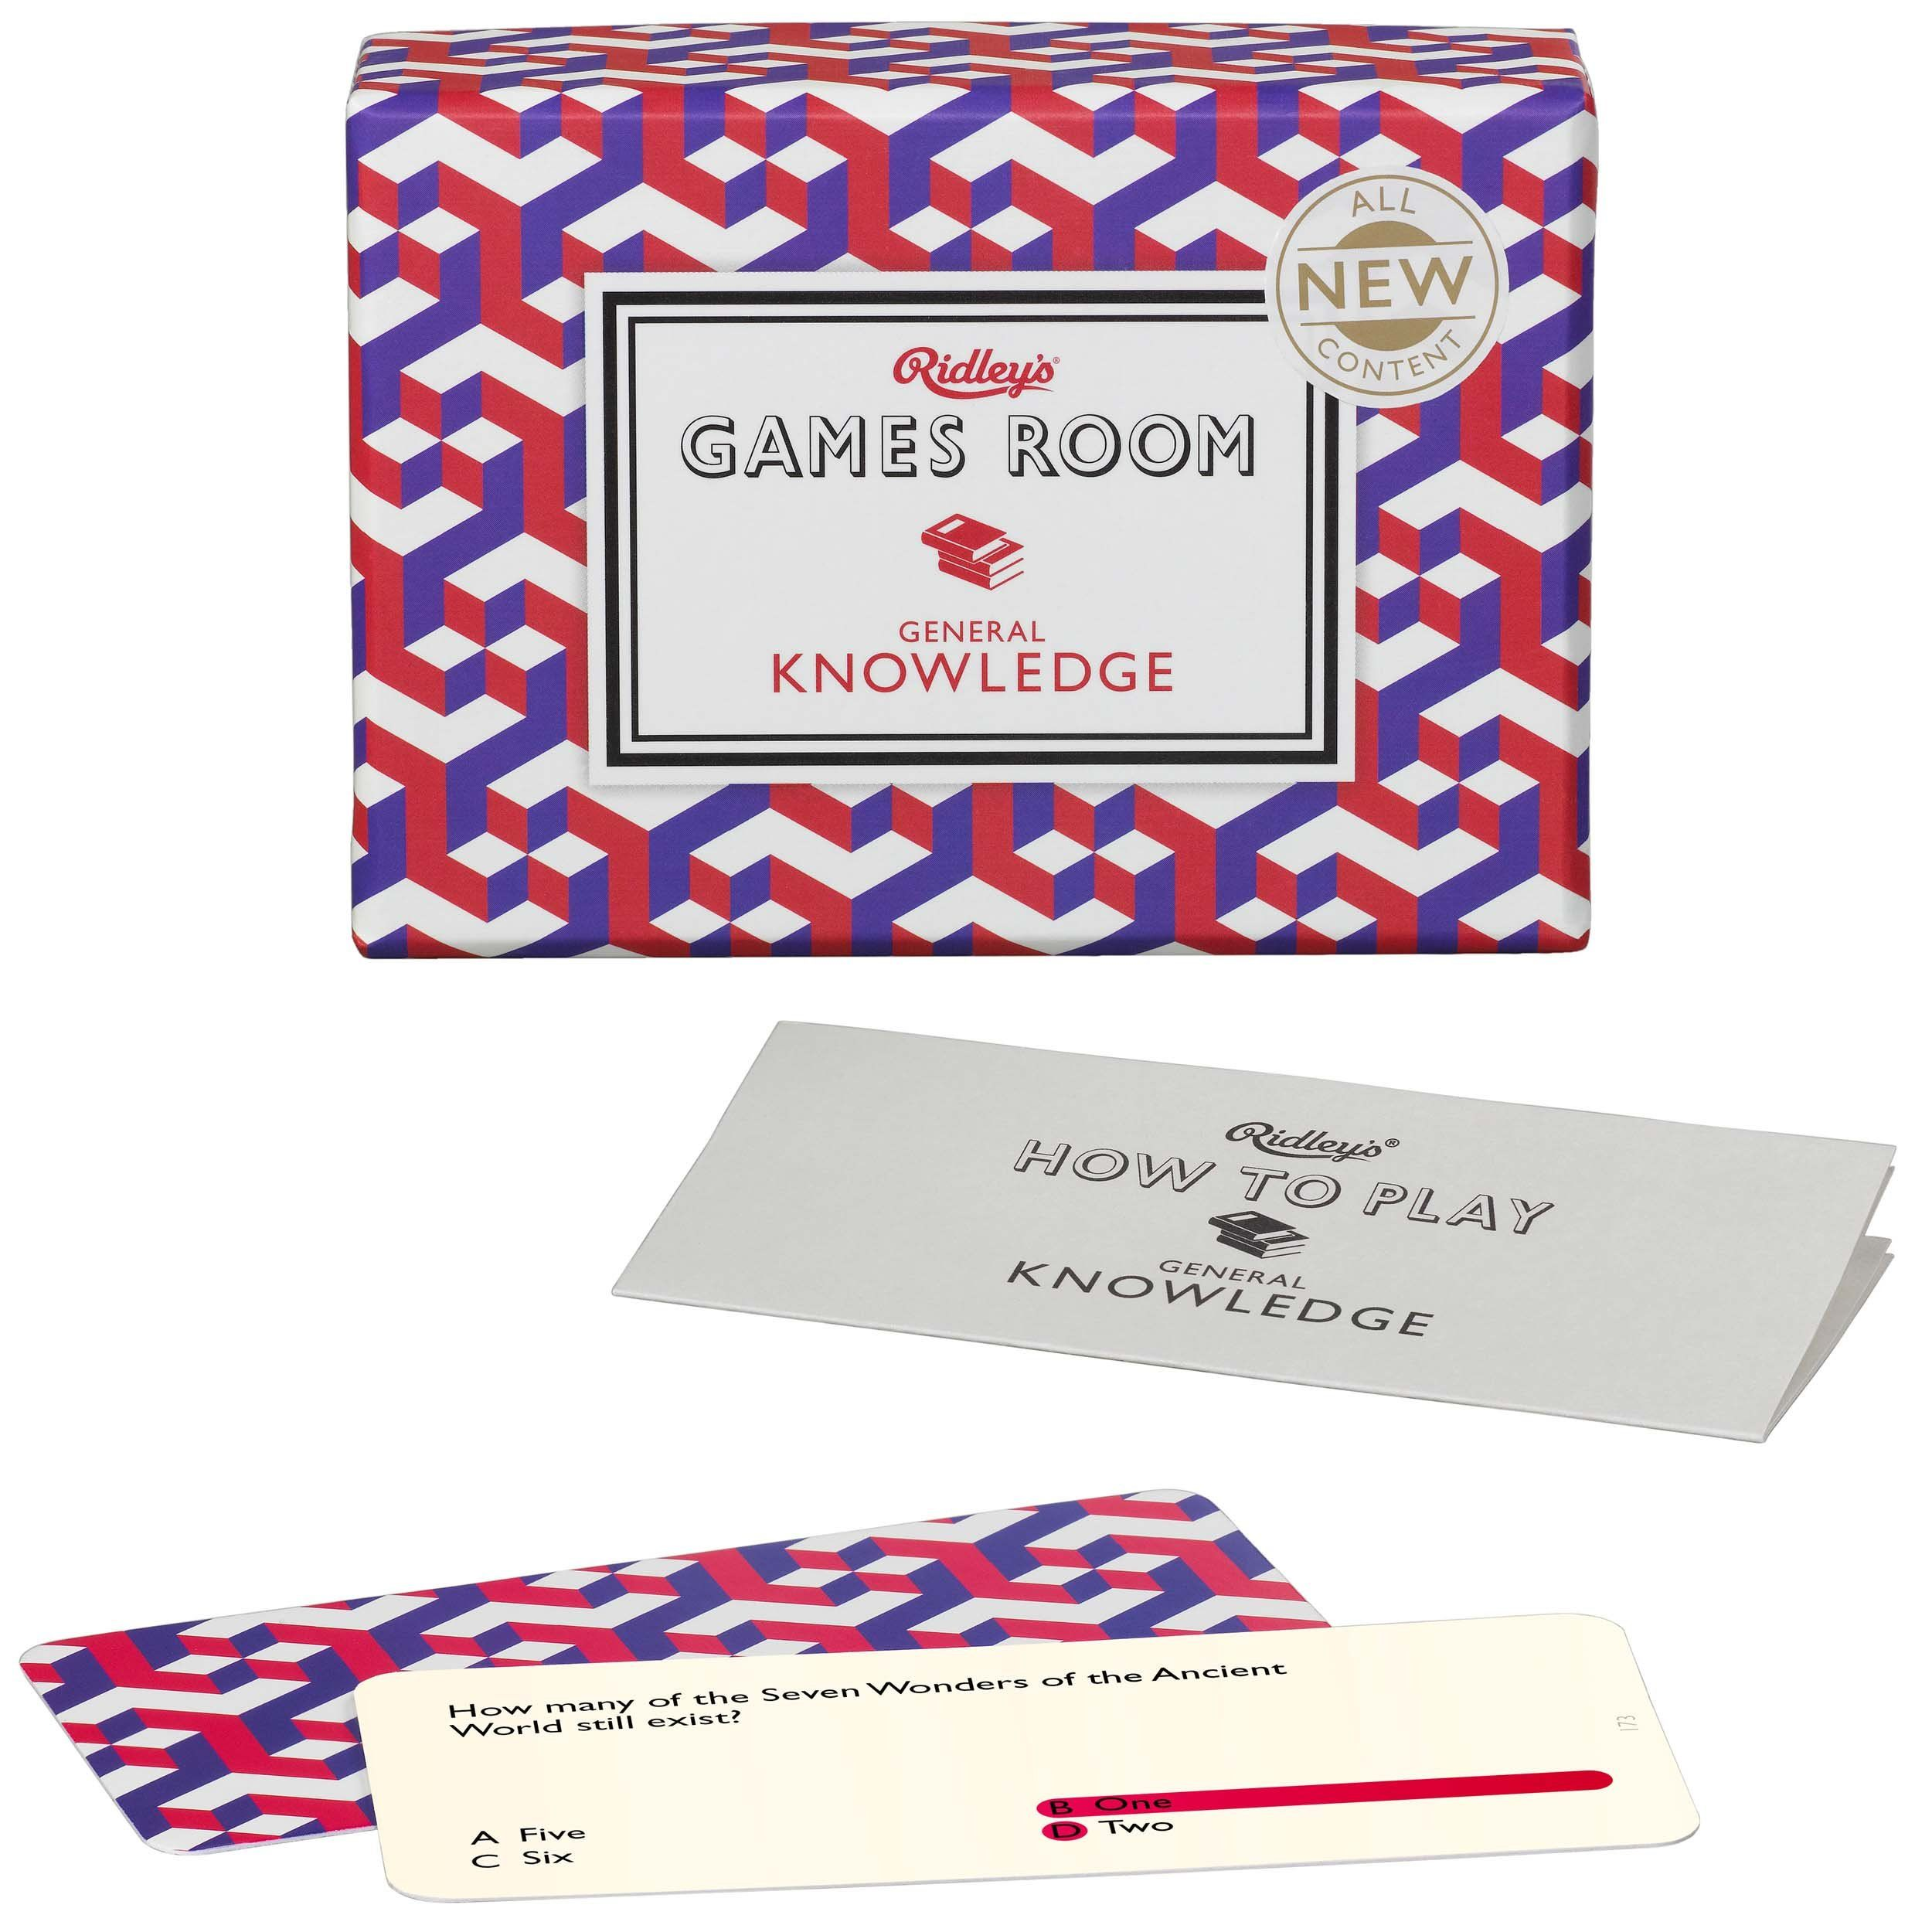 Ridley's Game Room General Knowledge Quiz V2 Card and